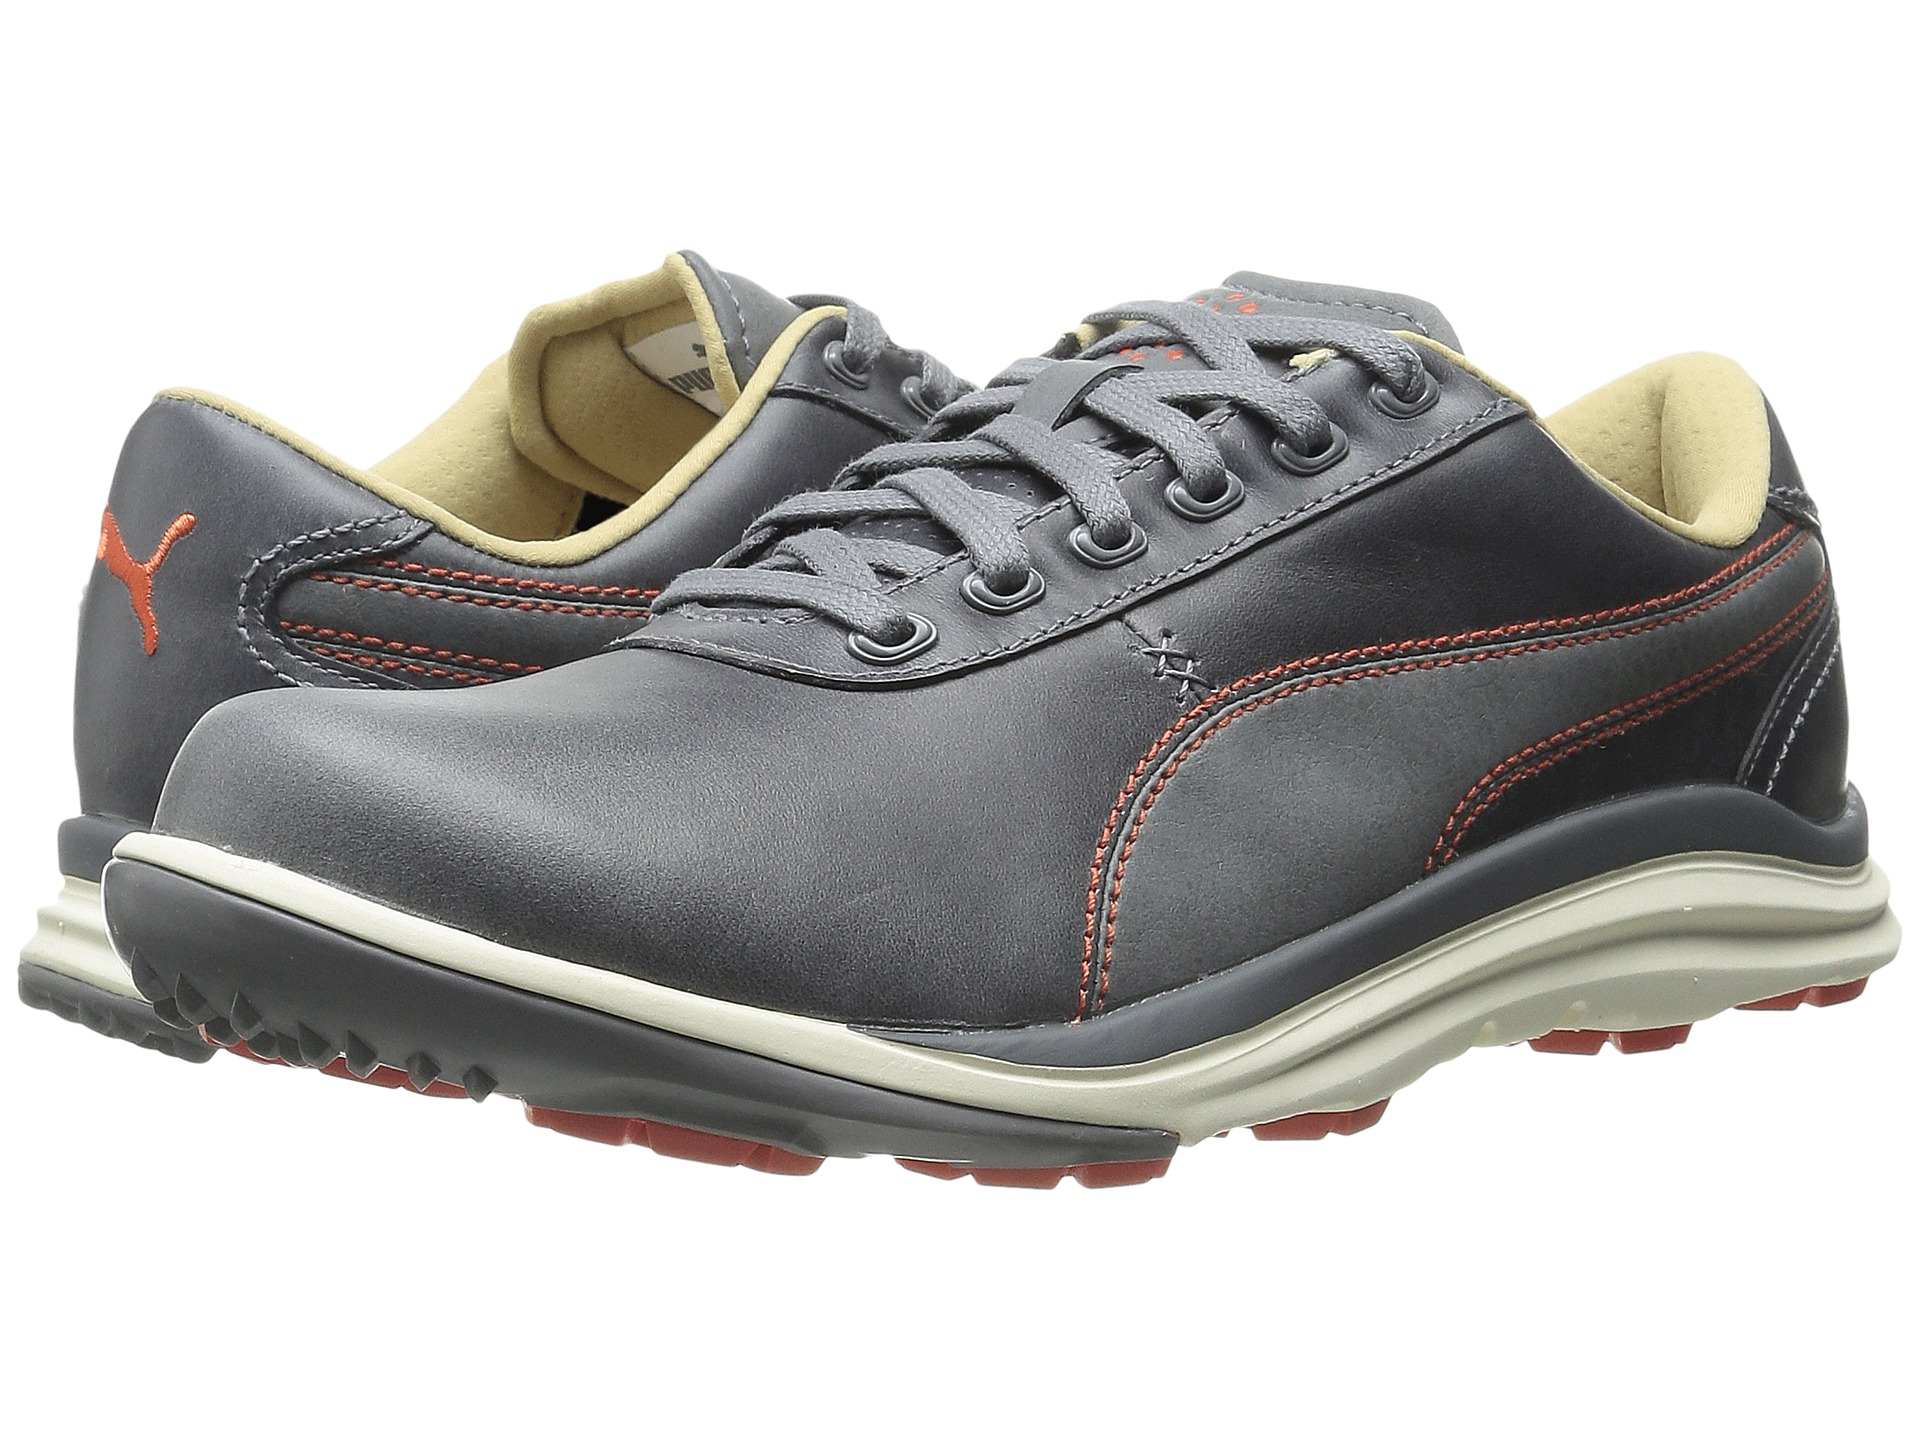 Clothing stores online – Zappos womens golf shoes 749750559c